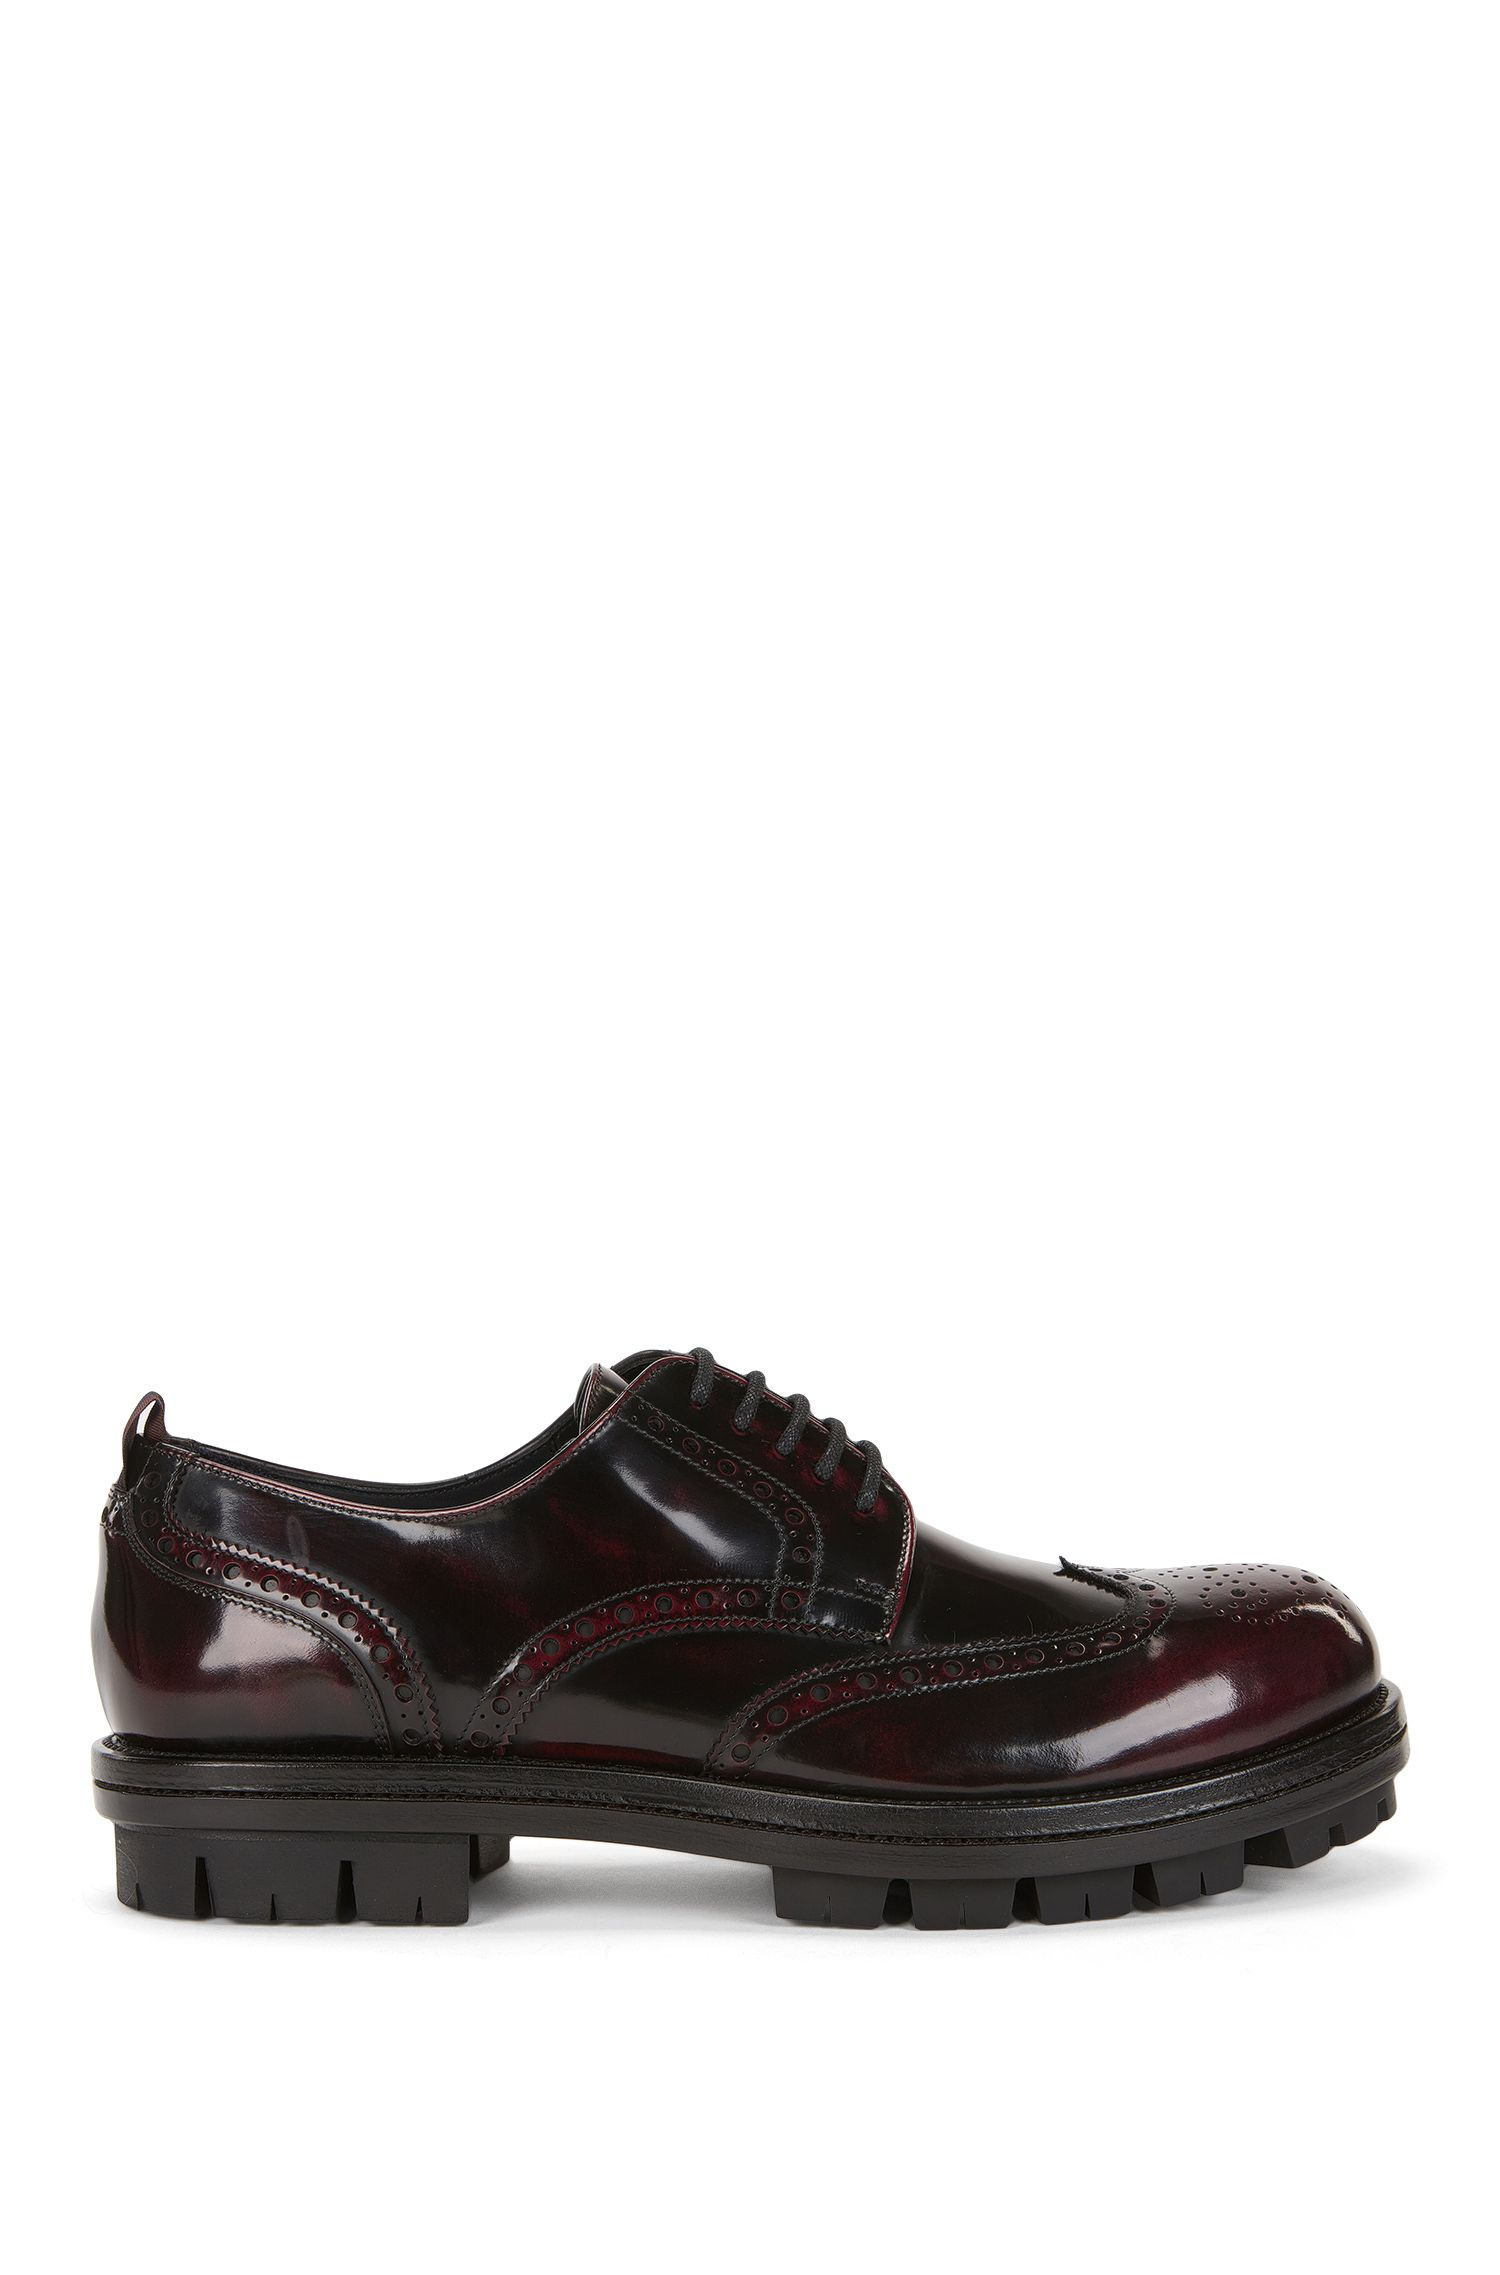 Chunky Derby Shoe | Twist Derb Wtb